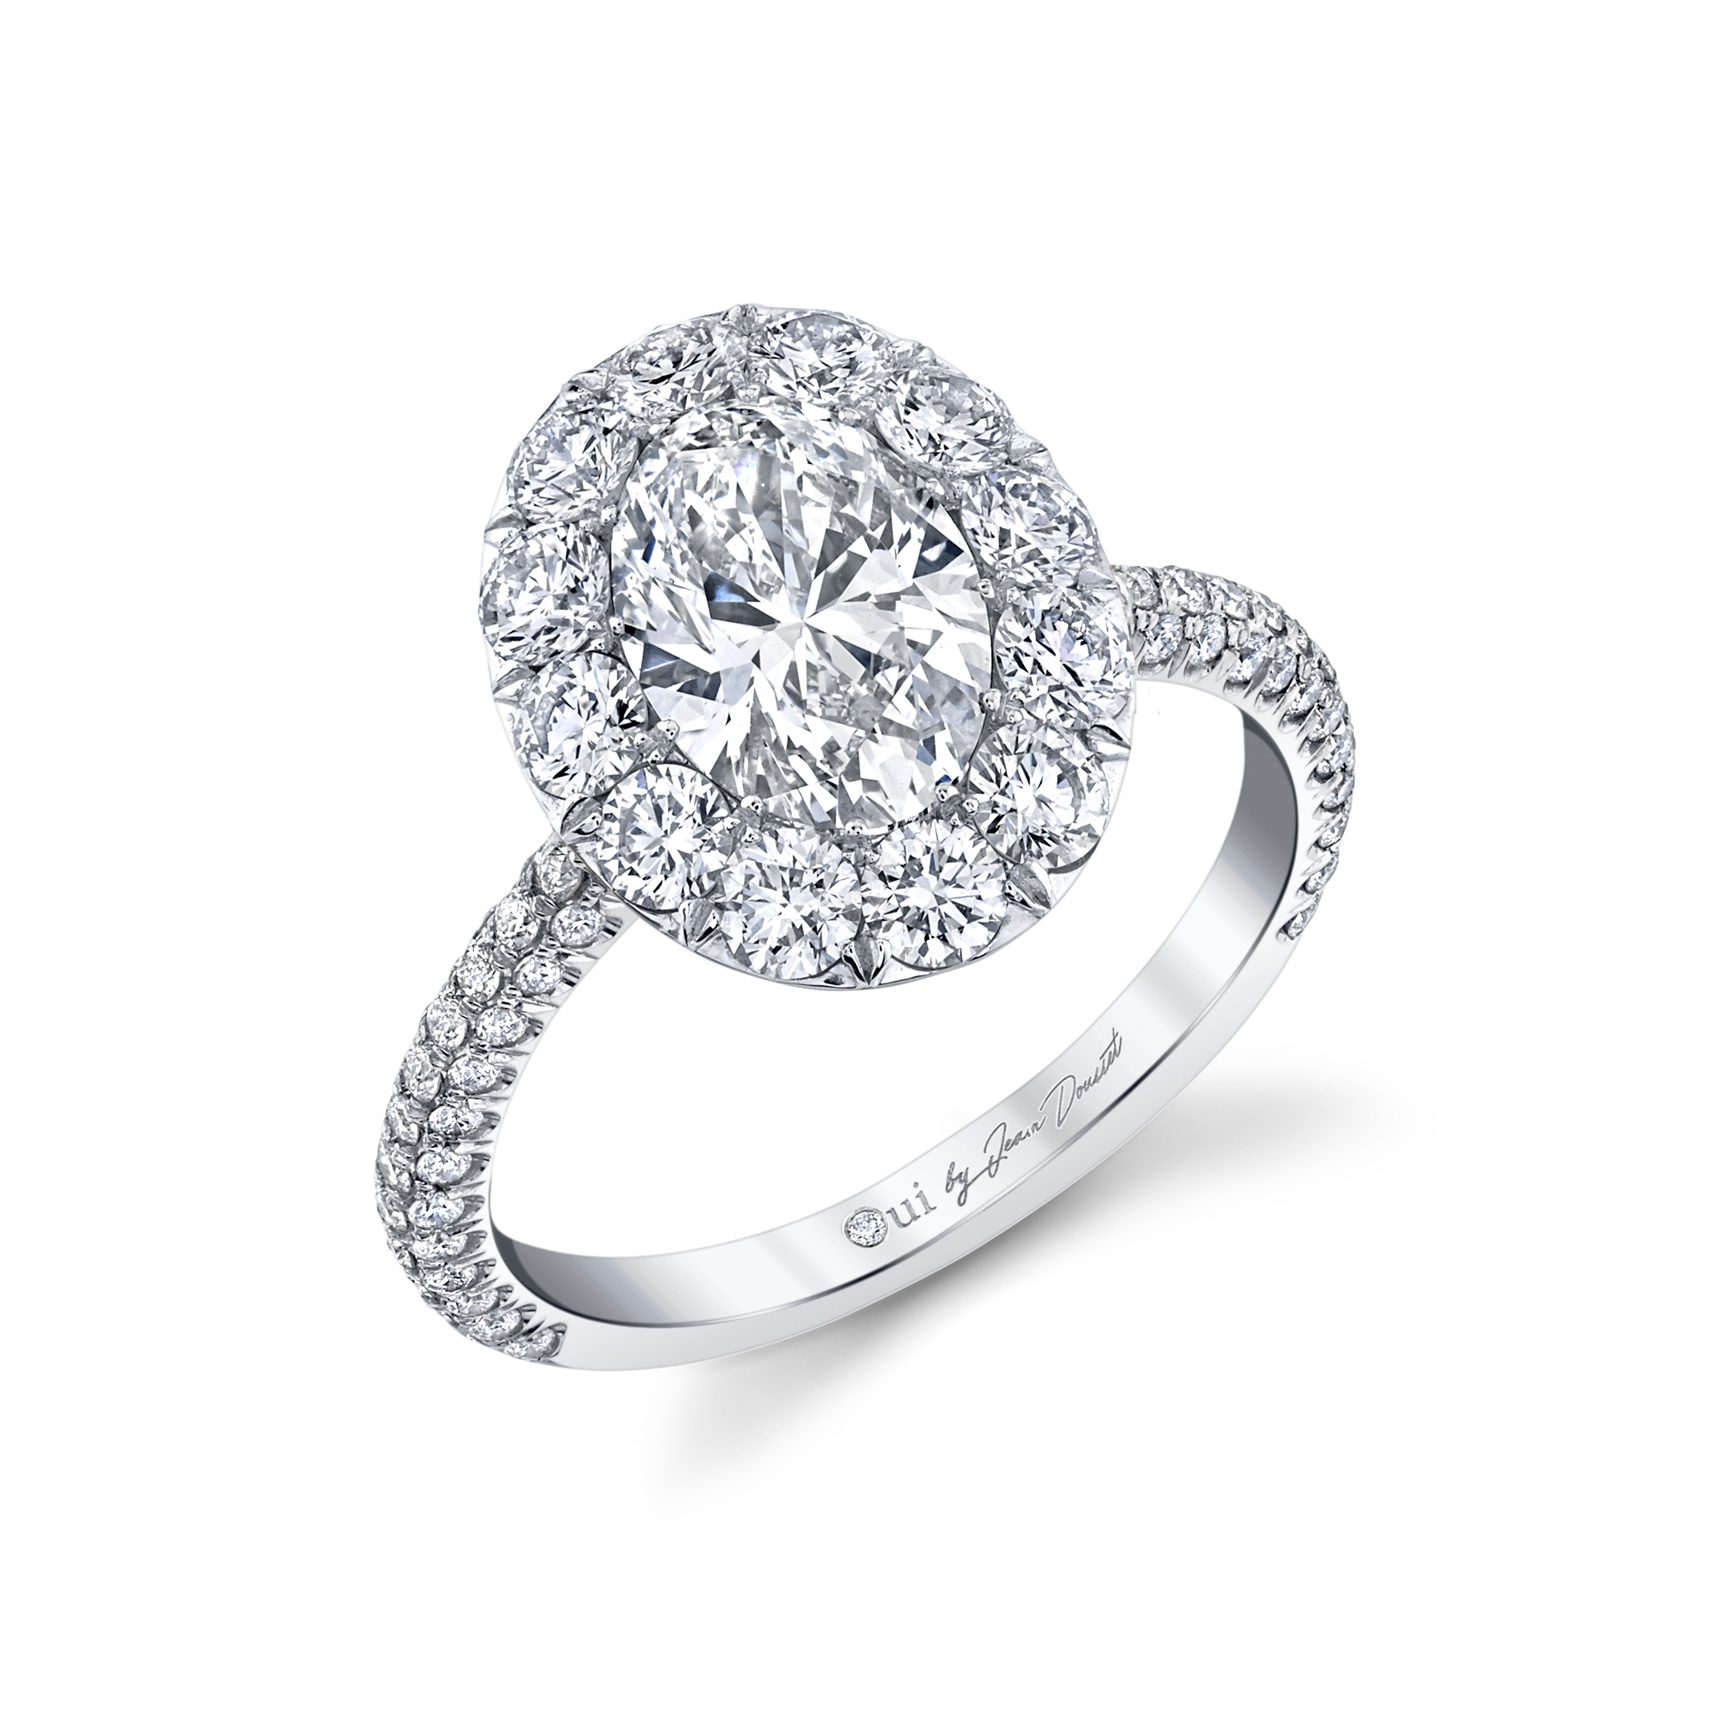 Jacqueline Floating Oval Seamless Solitaire® Engagement Ring with diamond pavé in 18k White Gold Profile View by Oui by Jean Dousset